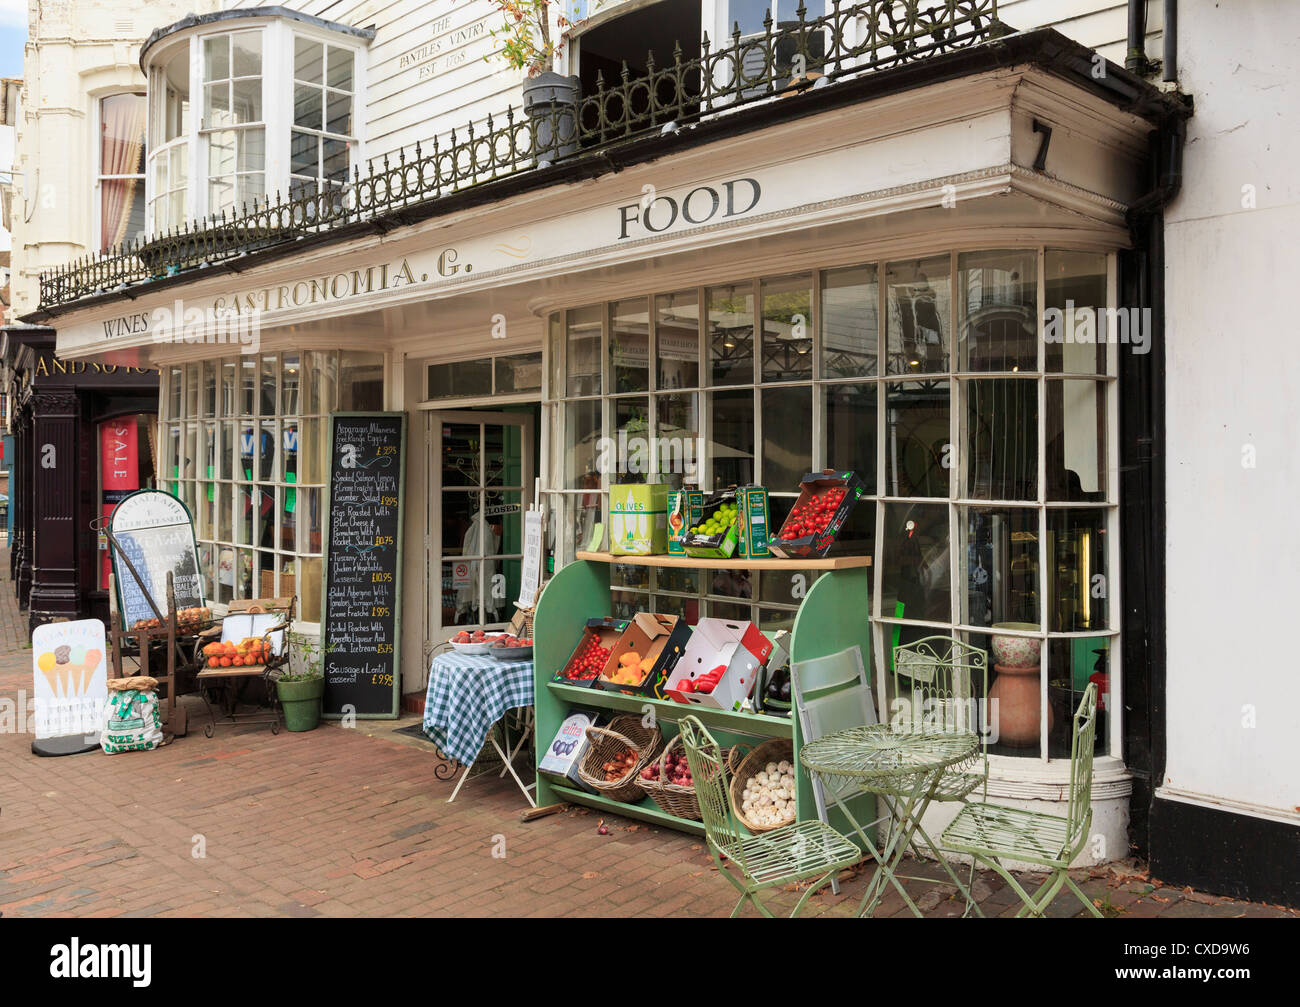 Gastronomia restaurant and delicatessen in The Pantiles Vintry with fruit and vegetables on display outside. Tunbridge - Stock Image